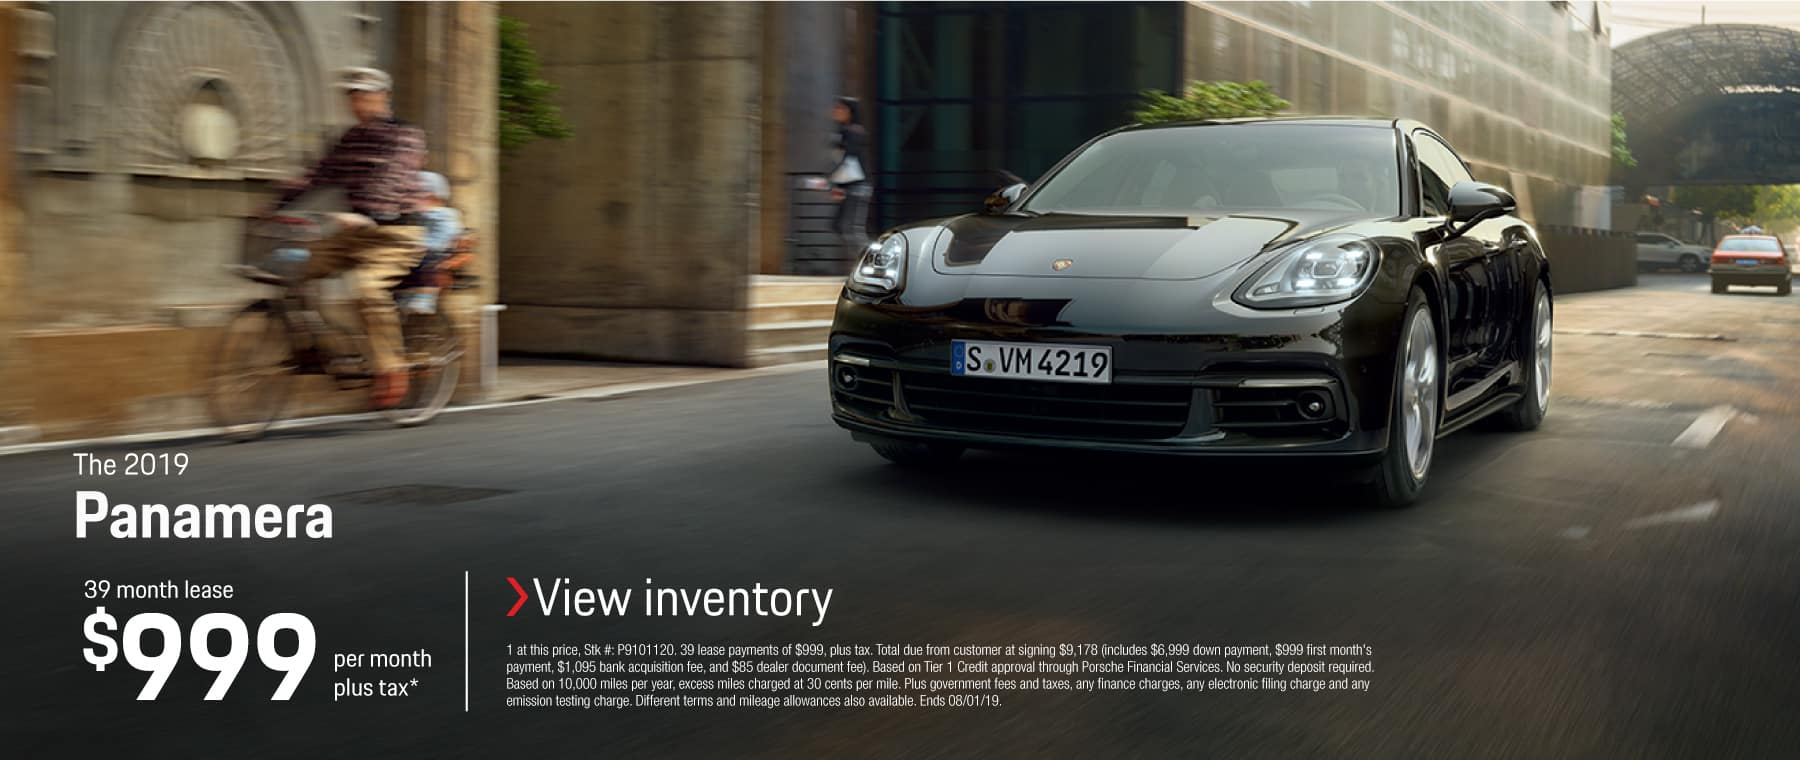 2019 Panamera Lease 999 39 month lease